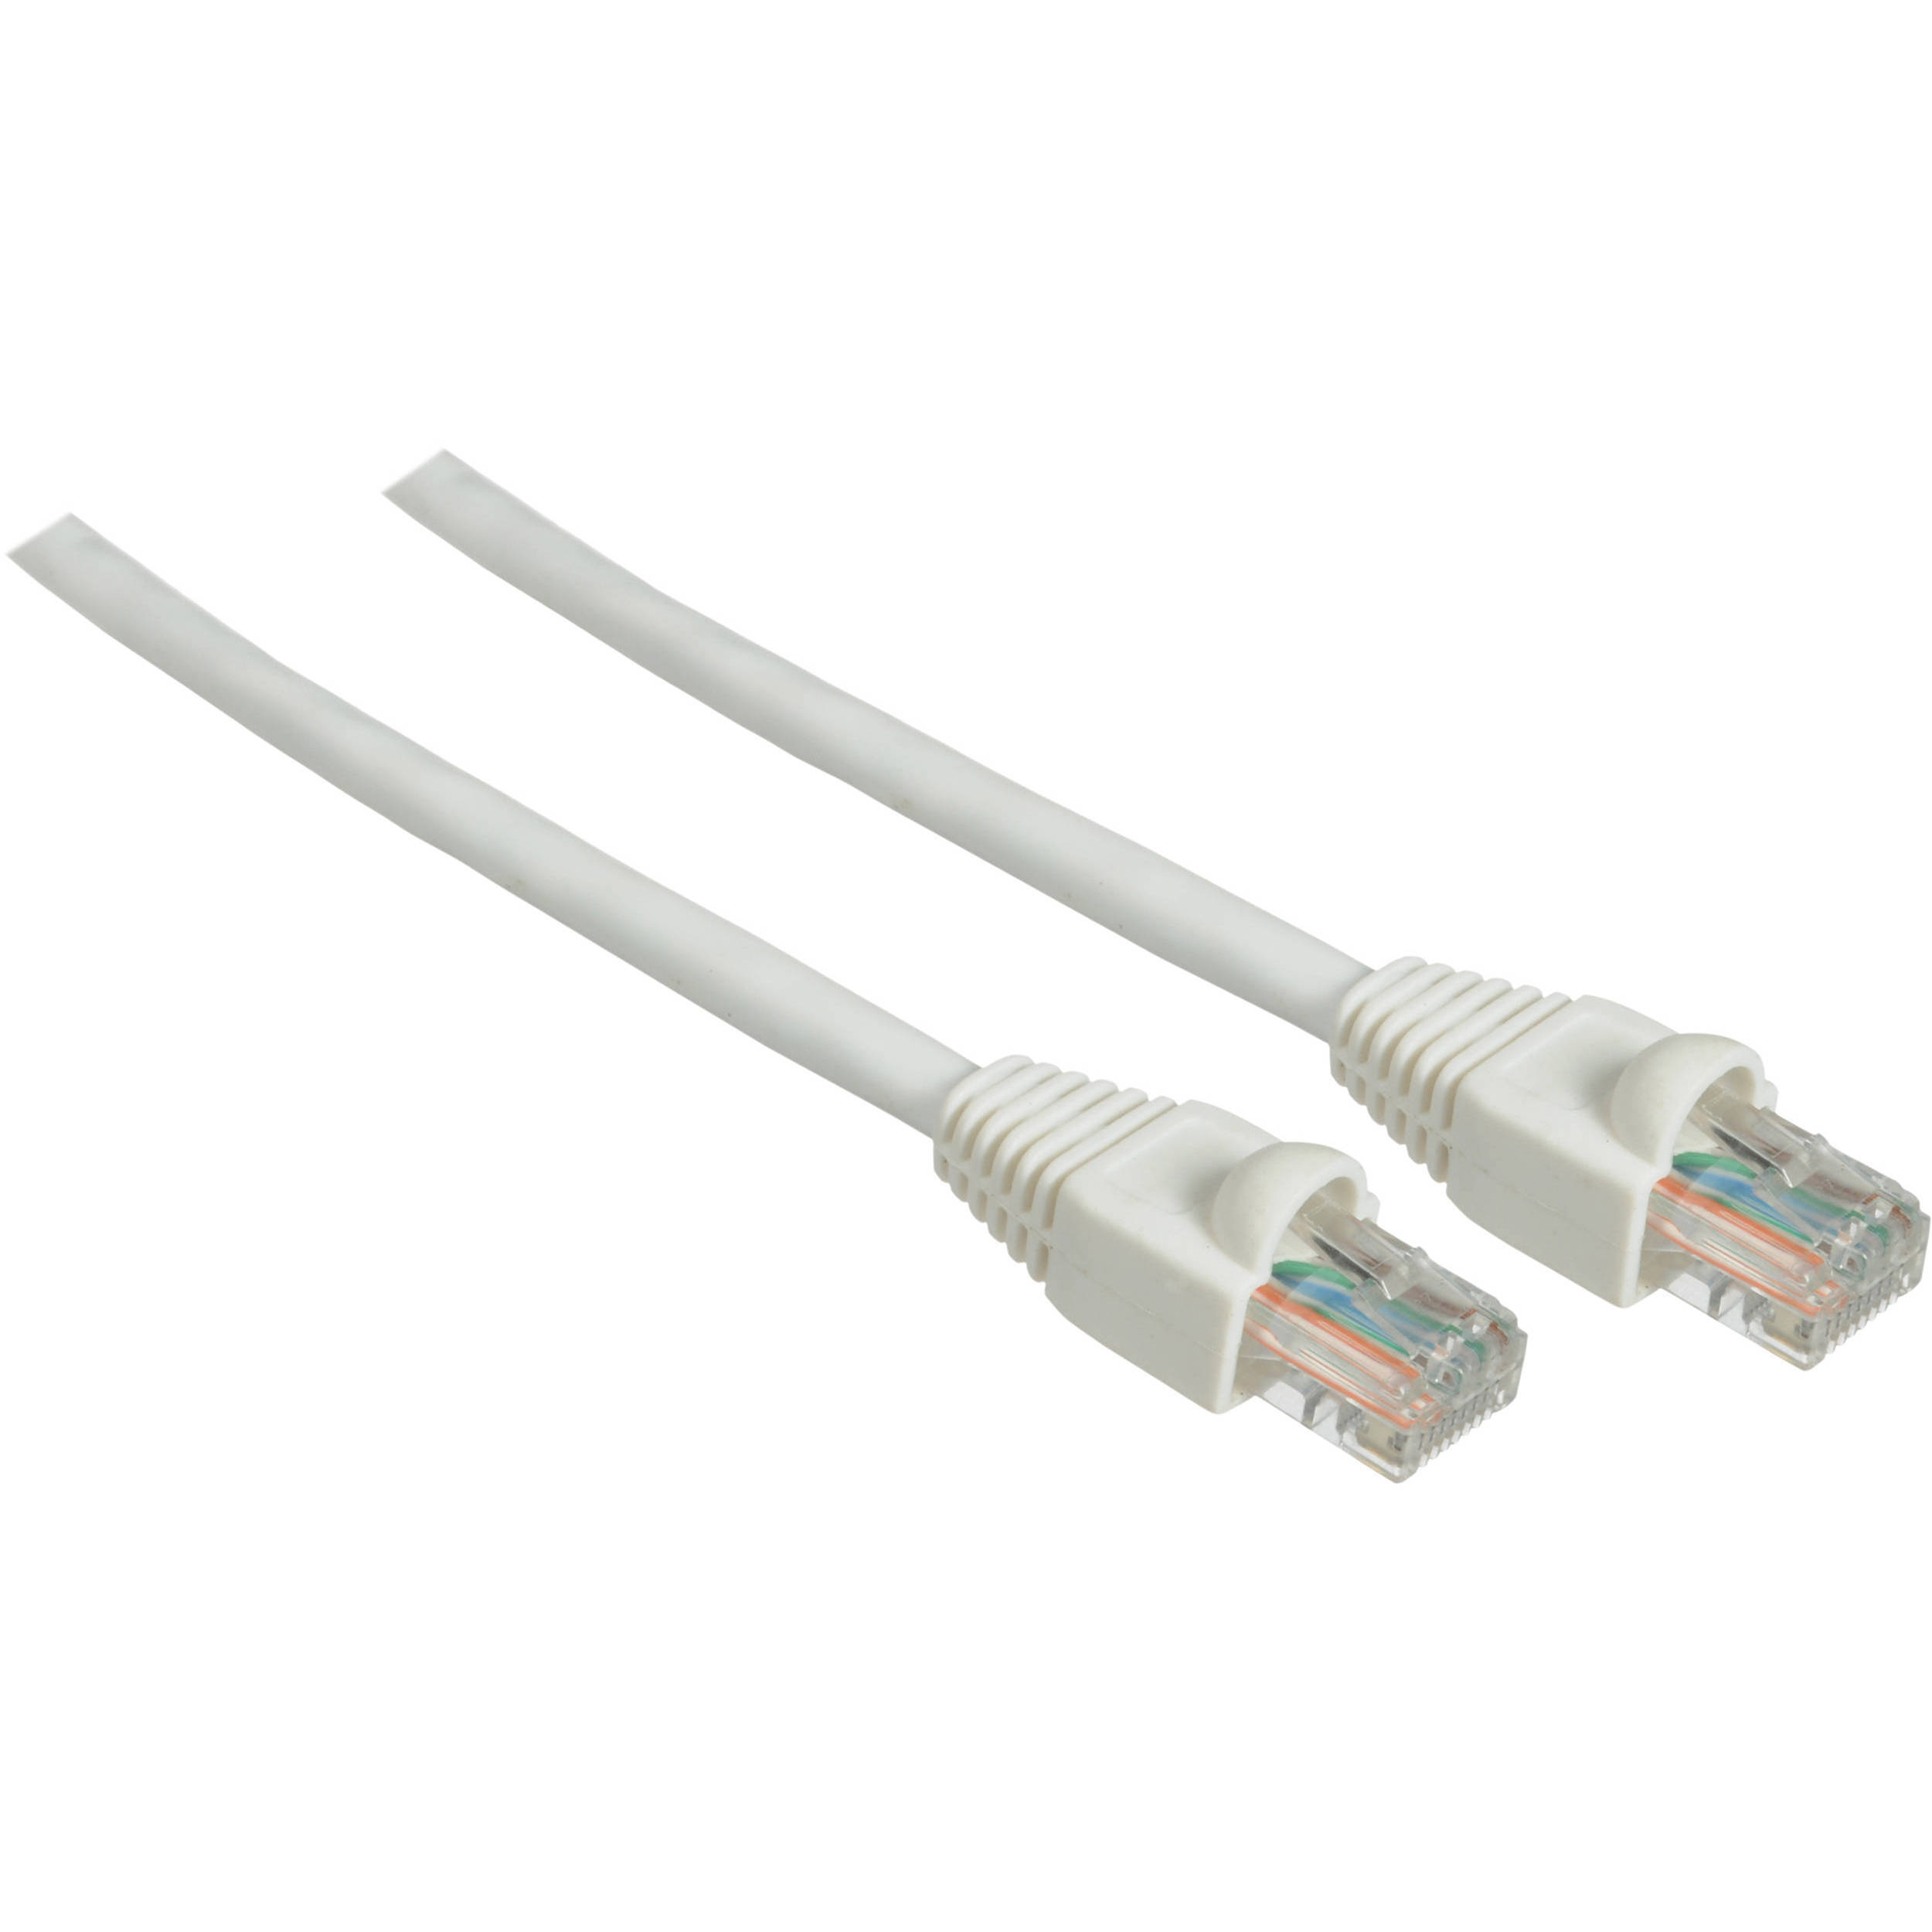 pearstone 25 39 cat6a snagless patch cable white cat6 25w b h. Black Bedroom Furniture Sets. Home Design Ideas